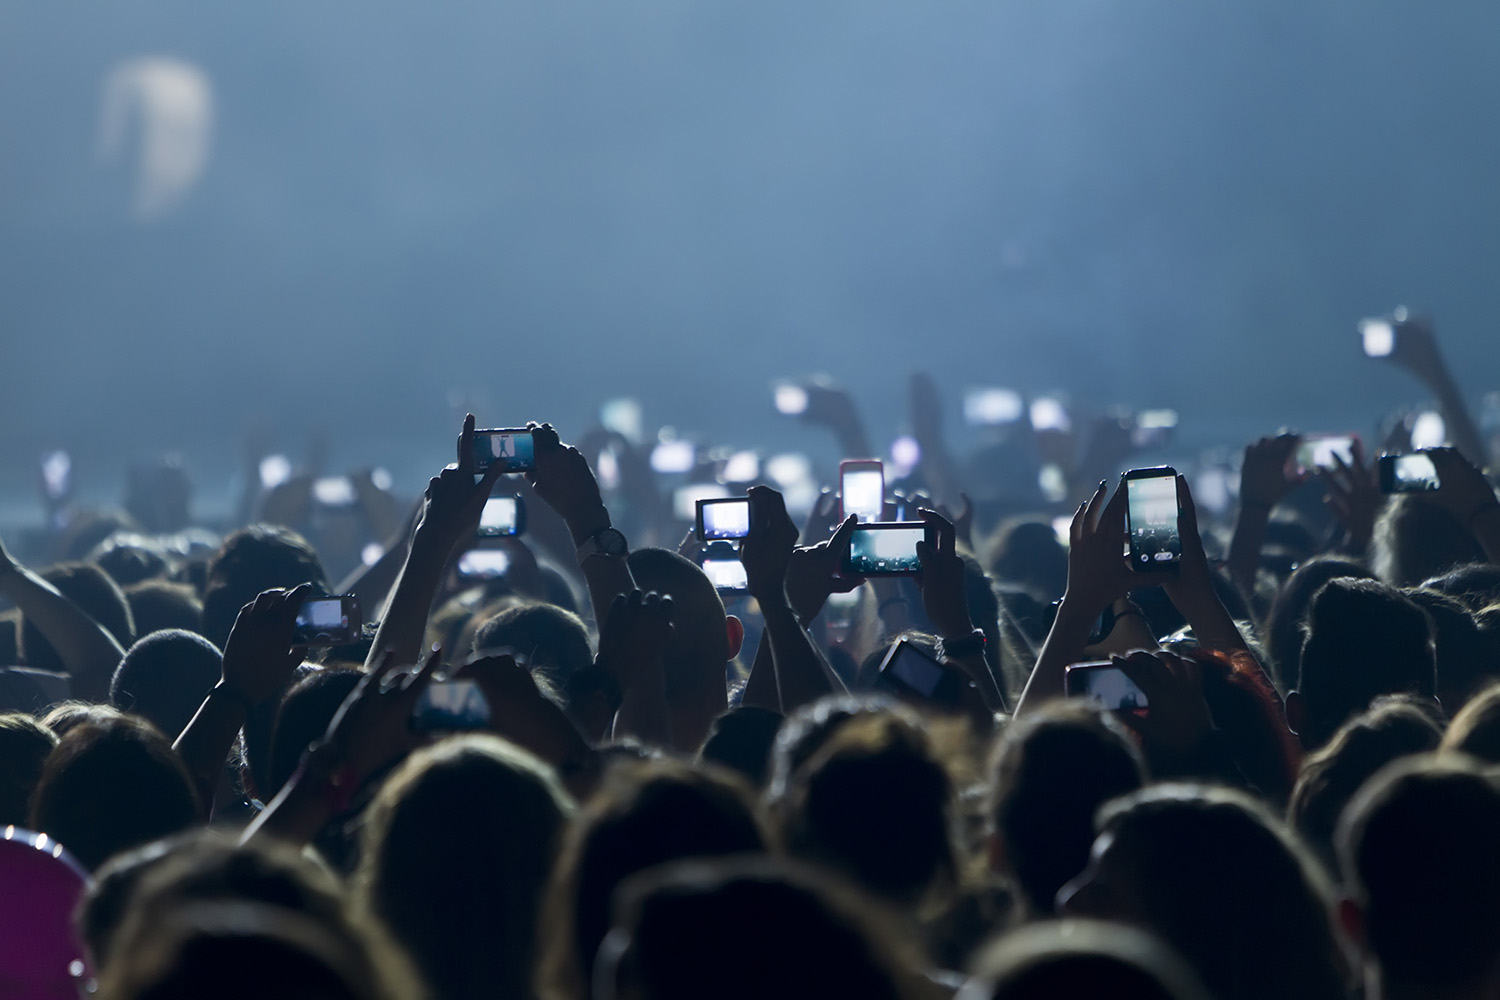 People with phones in the air at a concert